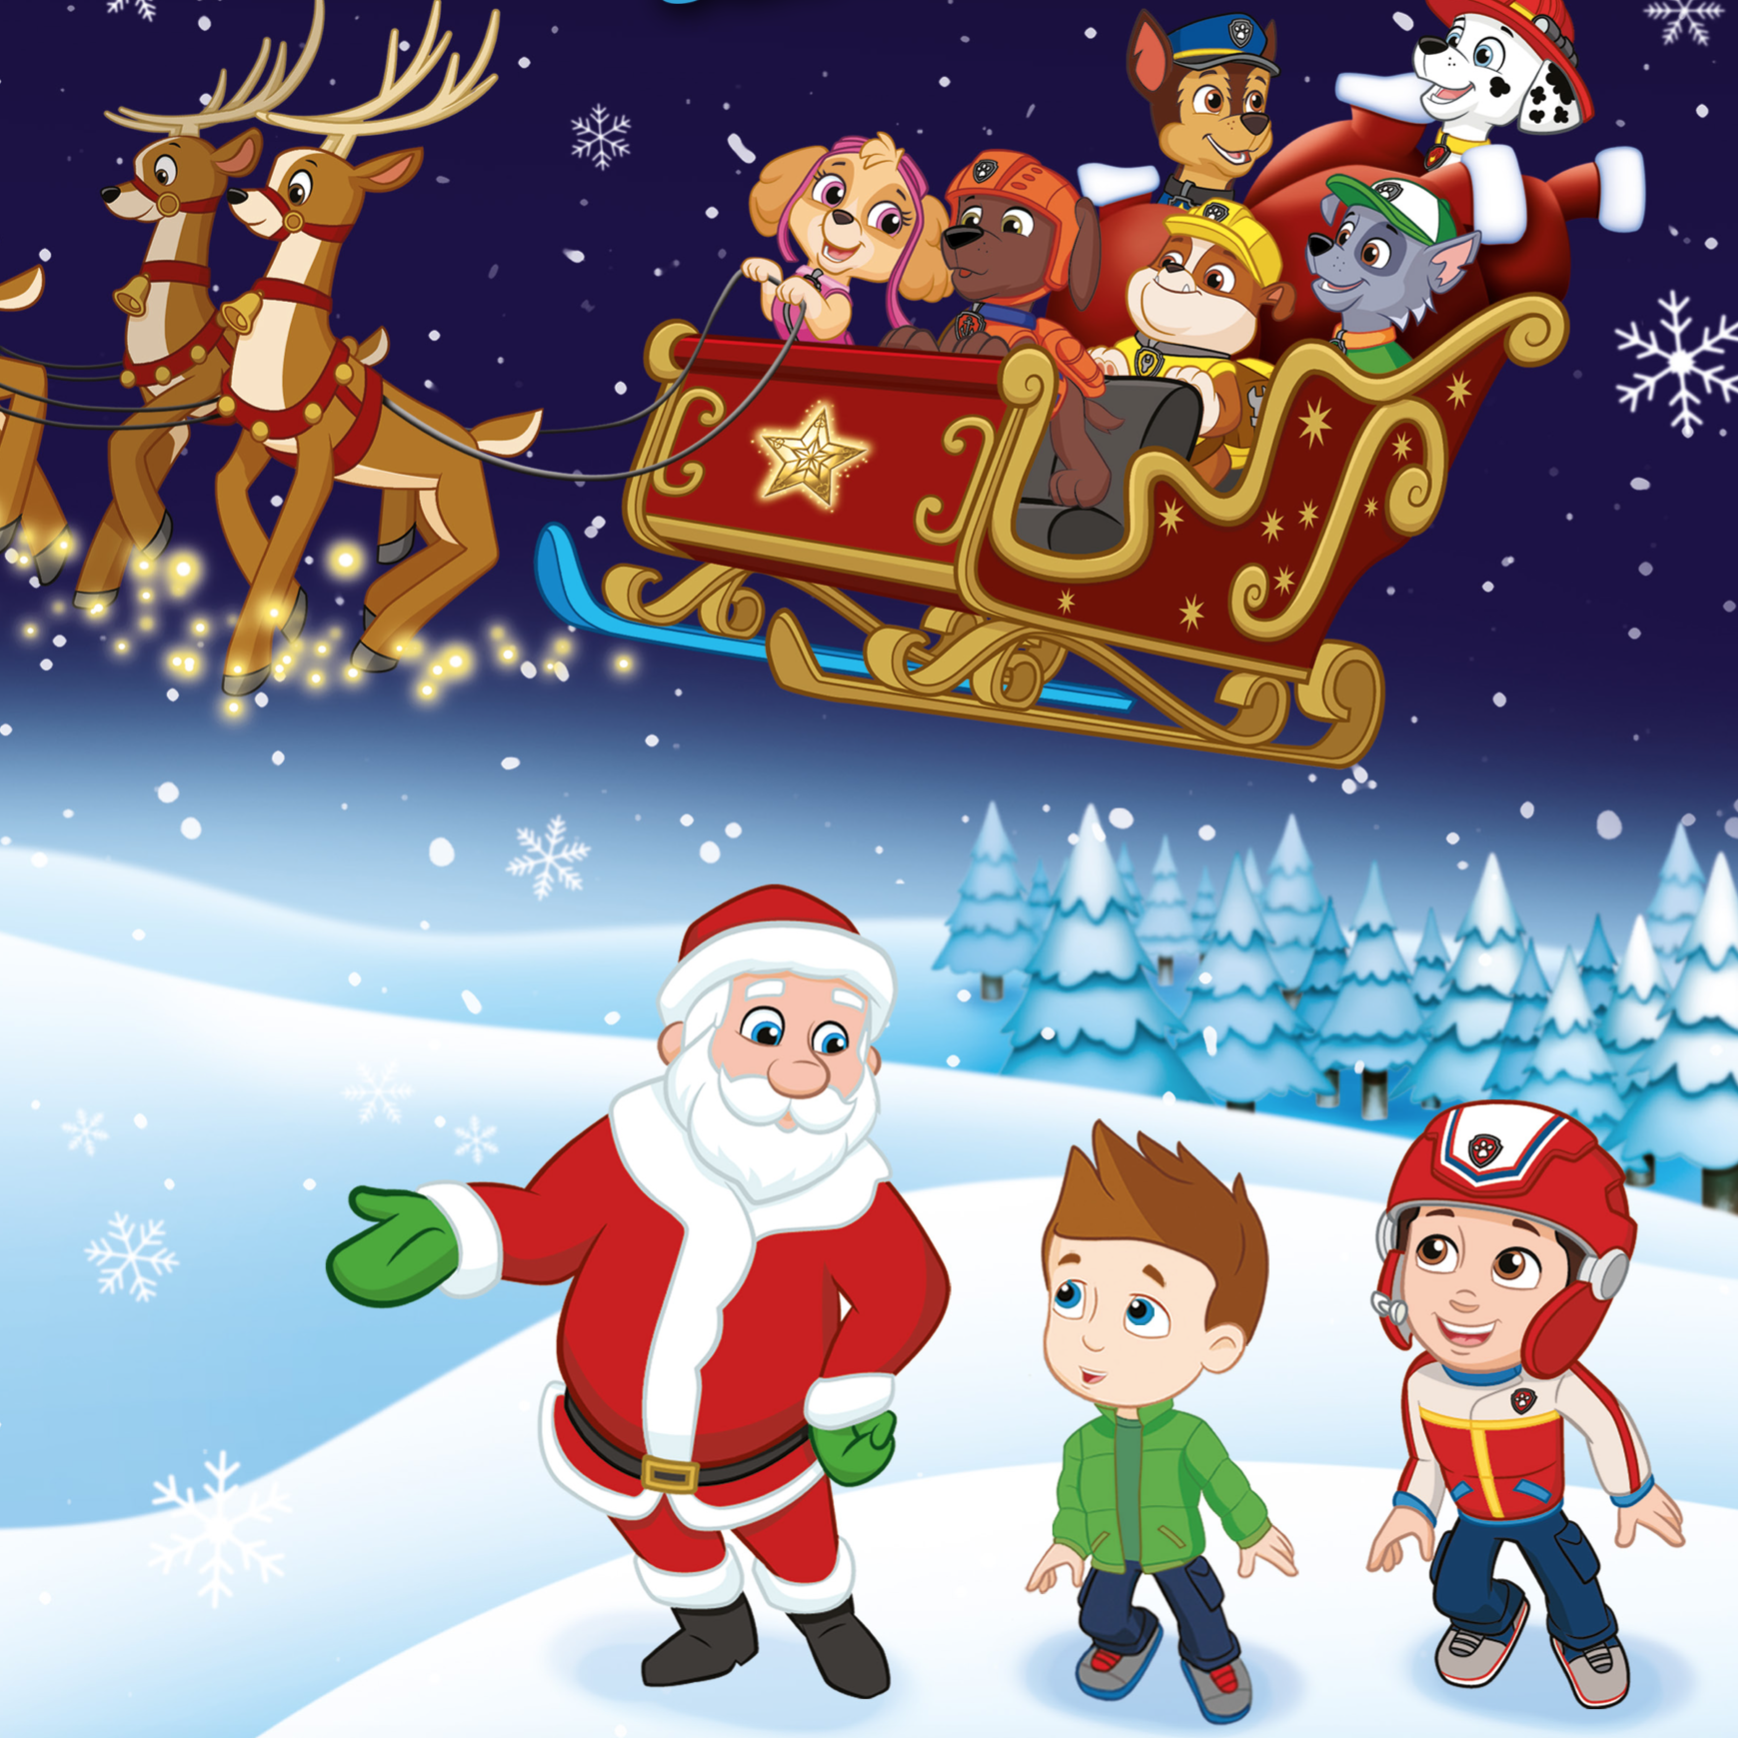 A little sneak peek for you... A brand new PAW Patrol Christmas adventure!